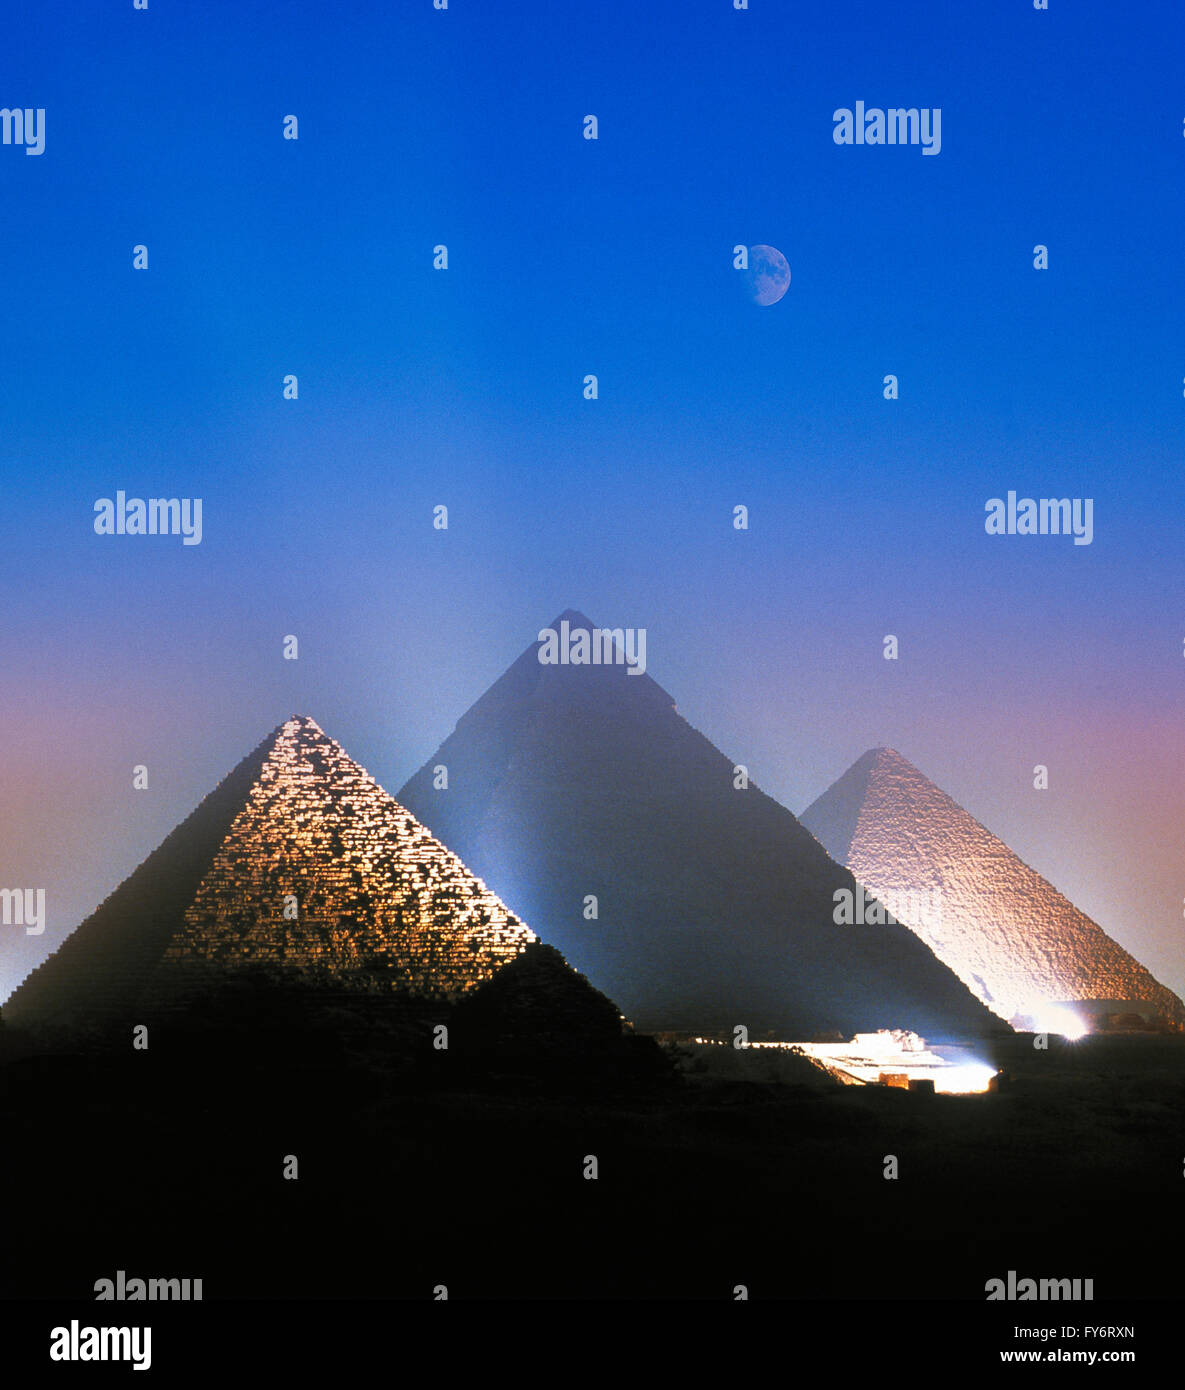 Moon over the illuminated Pyramids at Giza, Cairo, Egypt - Stock Image